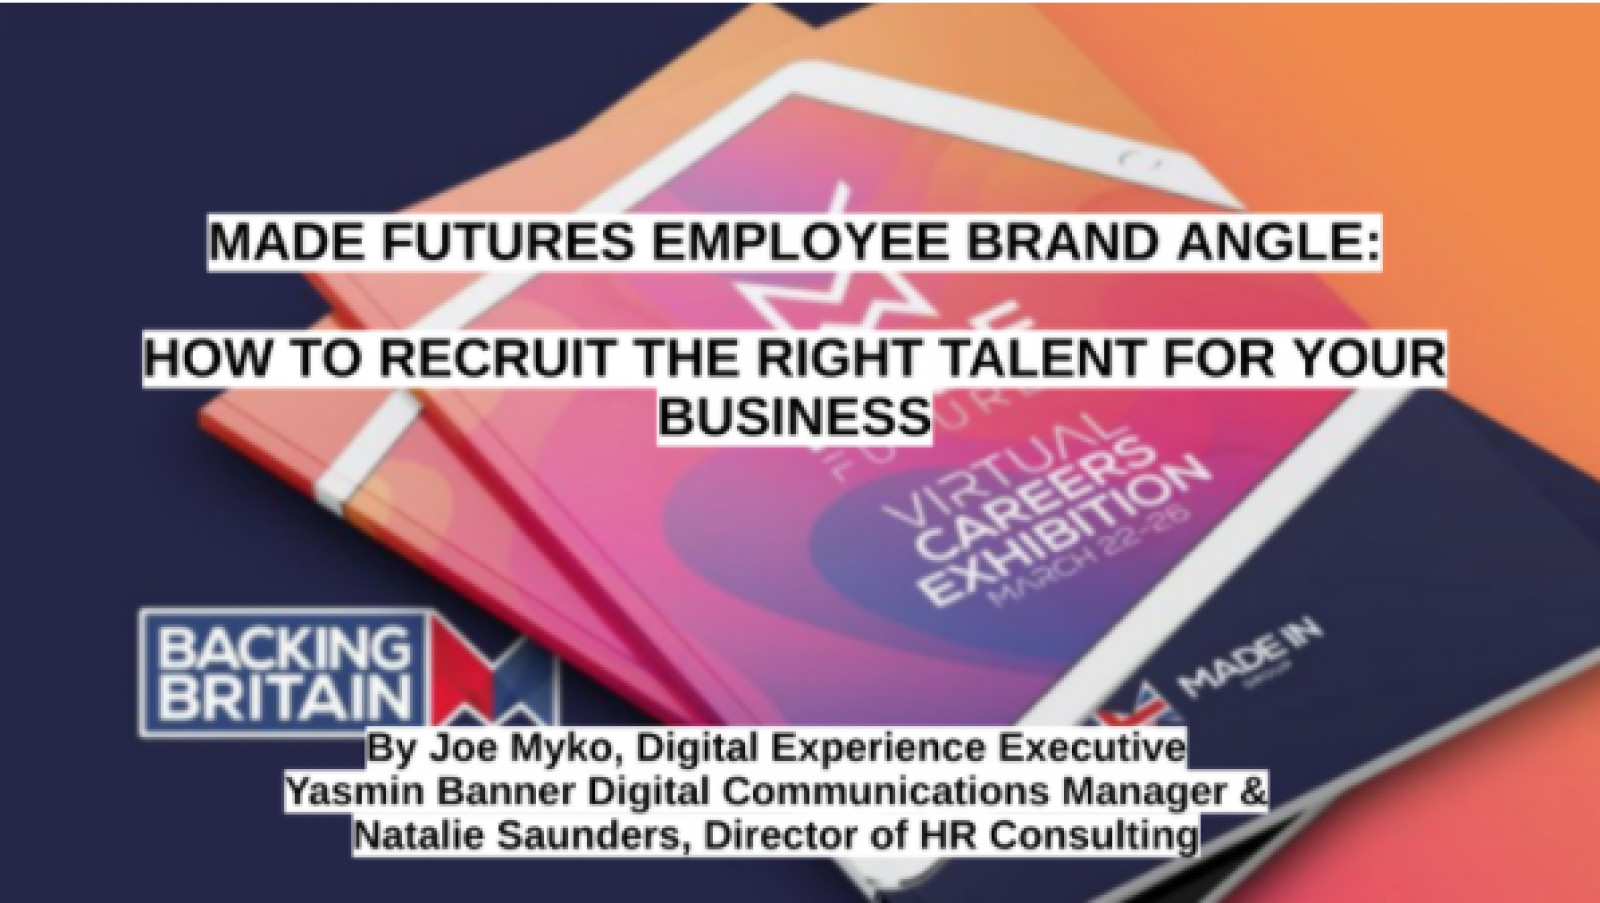 Made Futures Employee Brand Angle: How to Recruit the Right Talent For Your Business